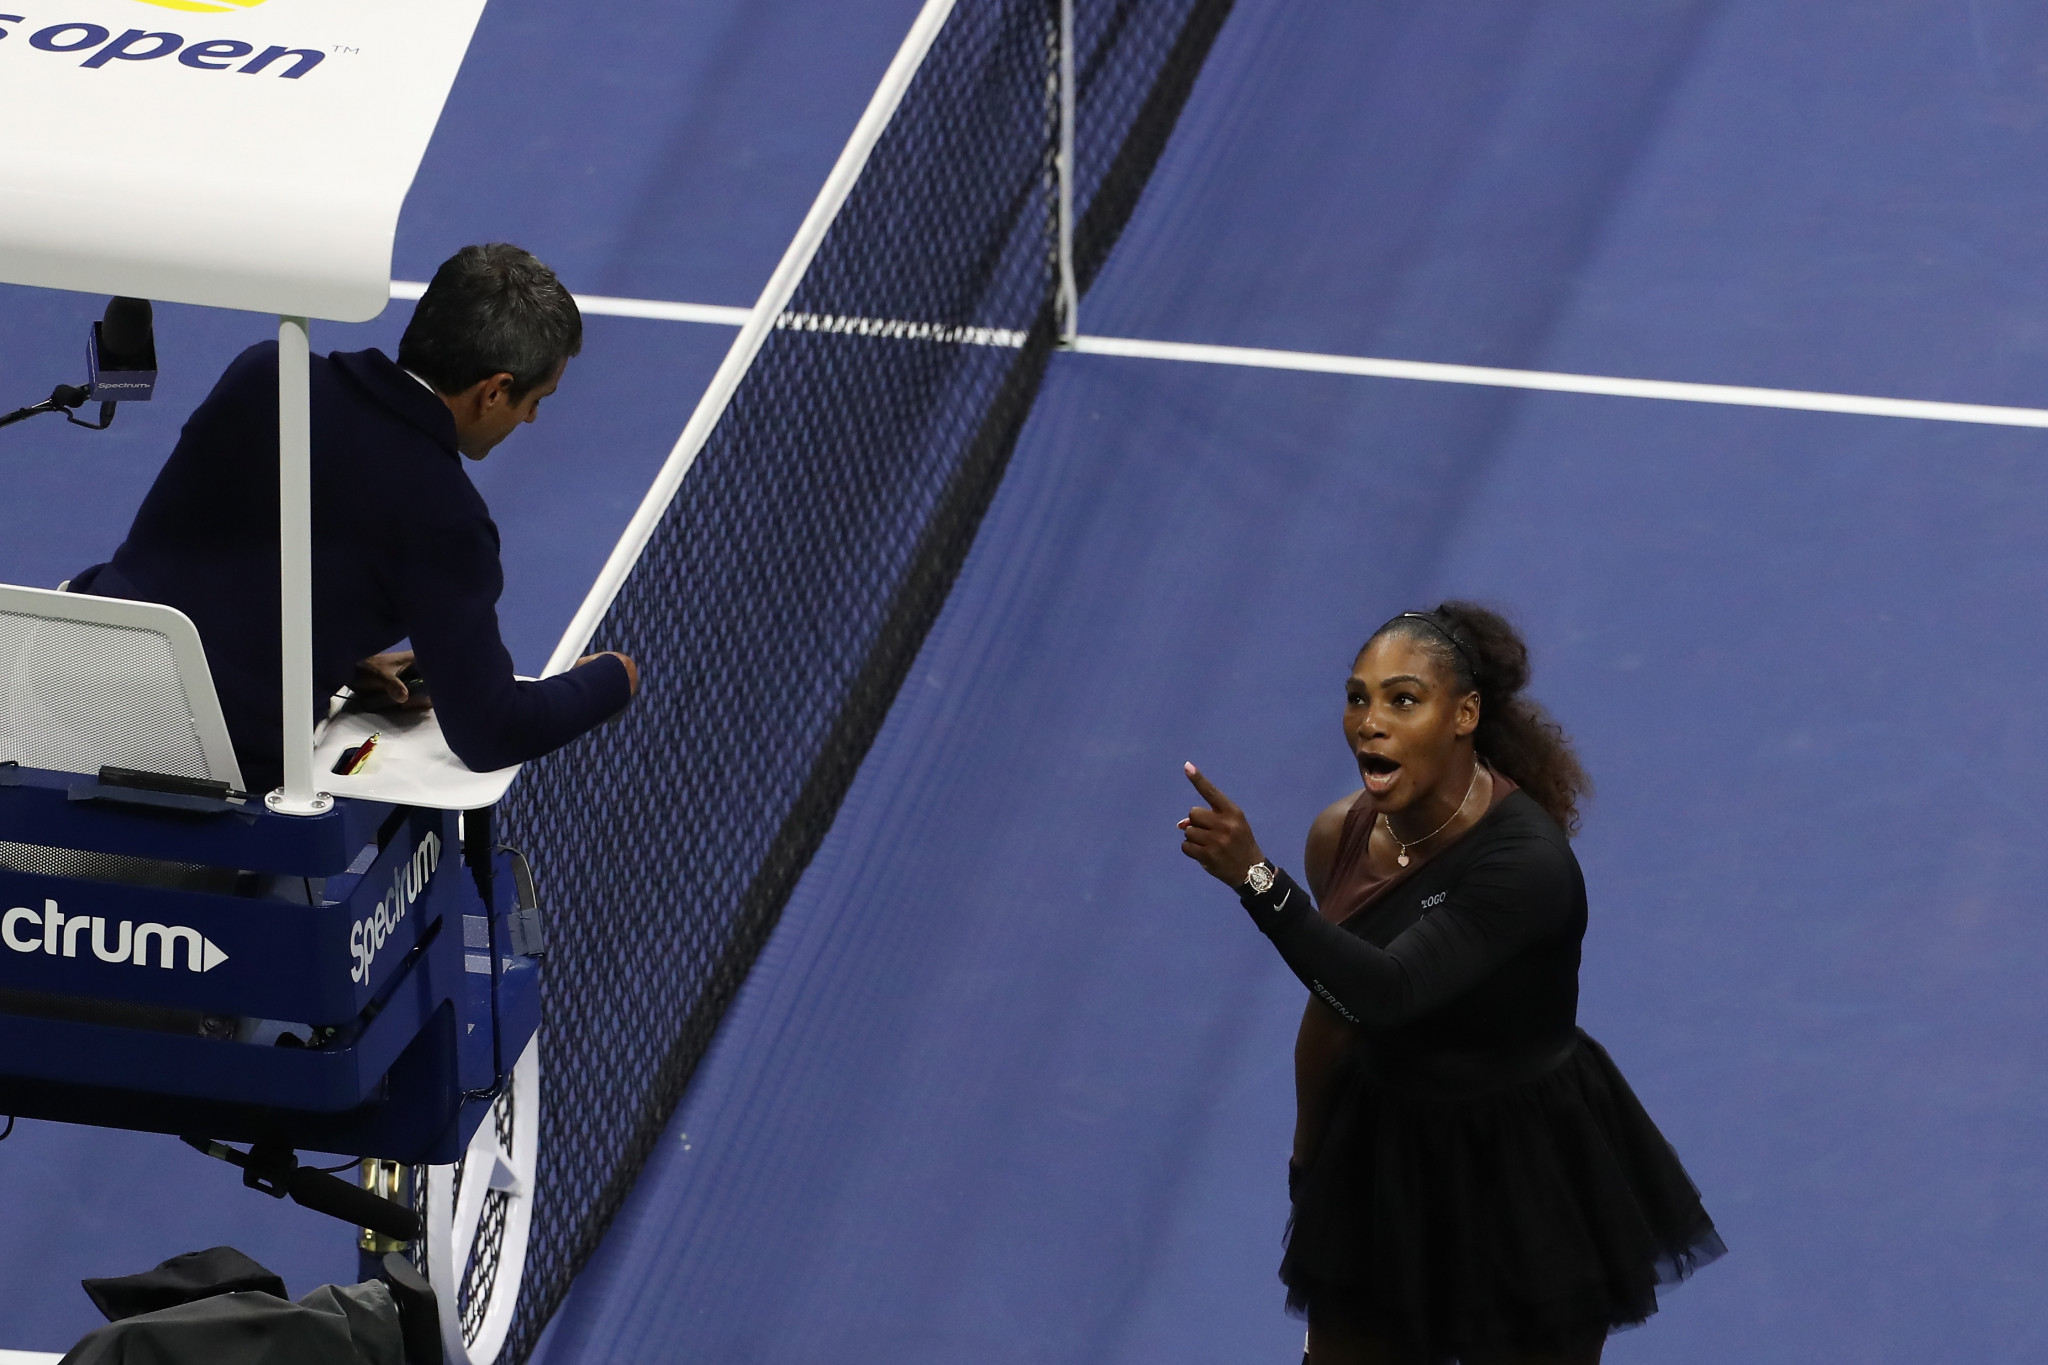 WTA back Serena Williams in US Open sexism row as ITF pledge support for umpire